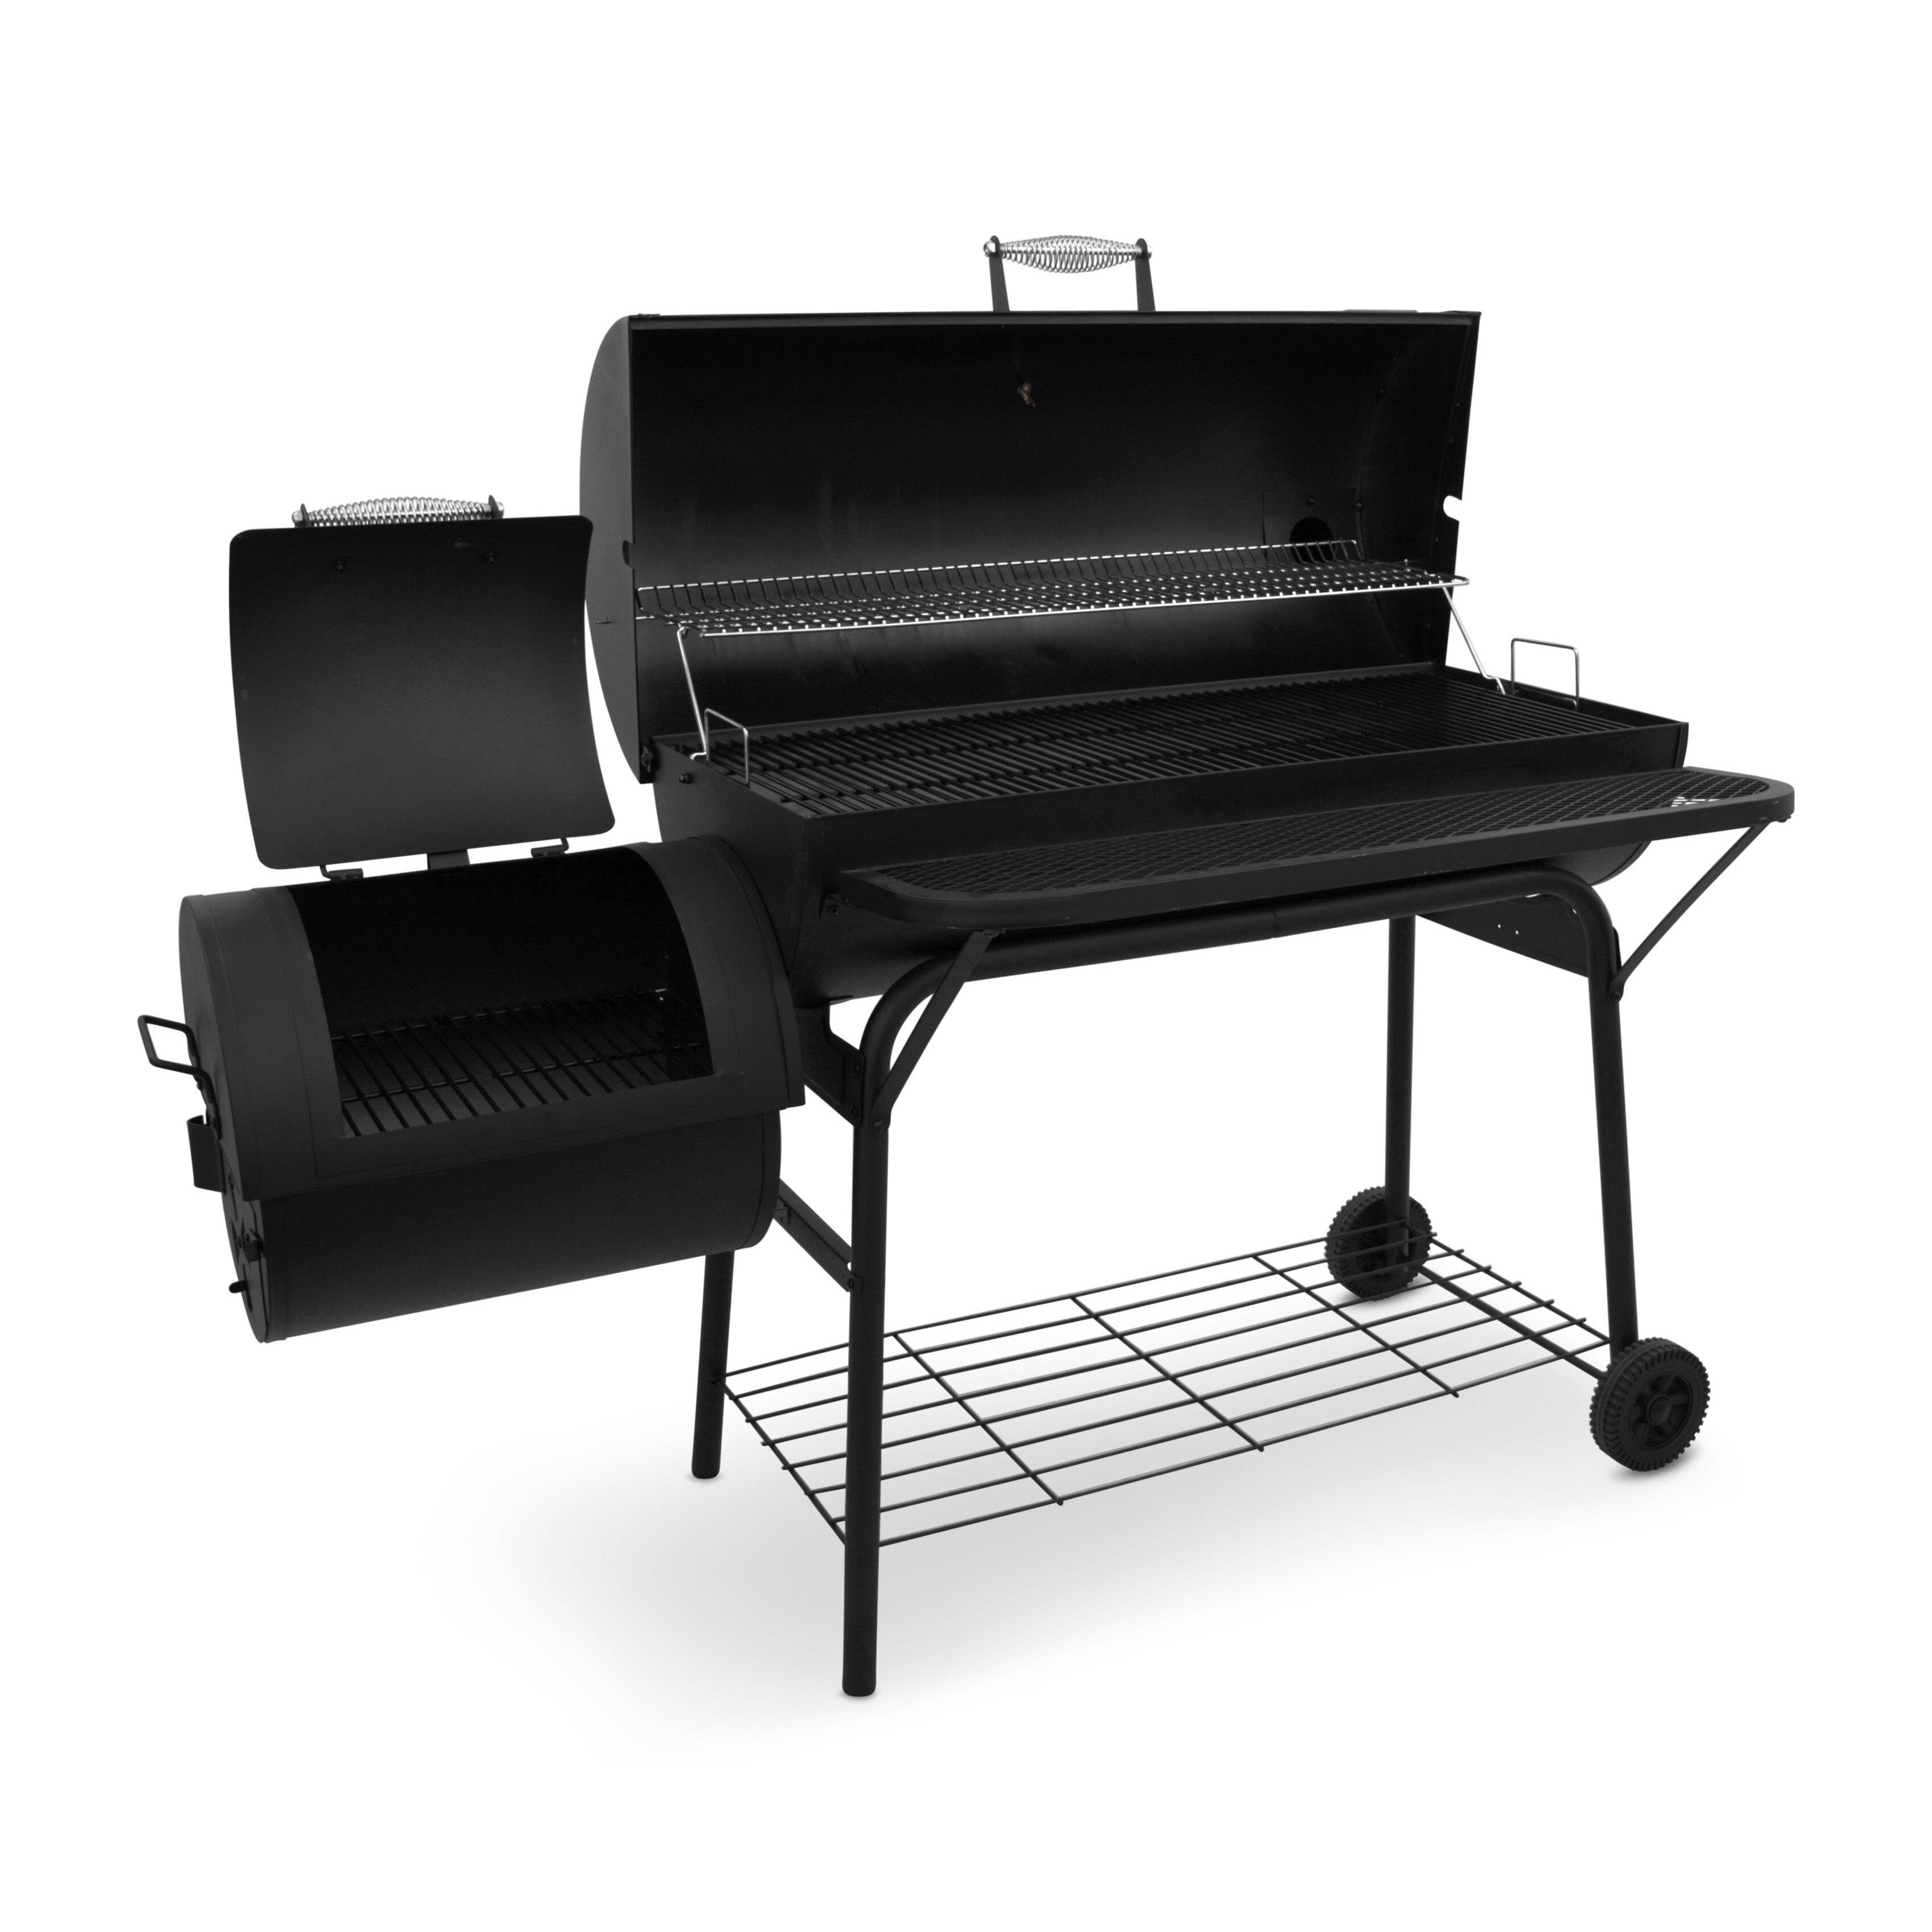 charbroil american gourmet deluxe offset charcoal smoker grill reviews. Black Bedroom Furniture Sets. Home Design Ideas